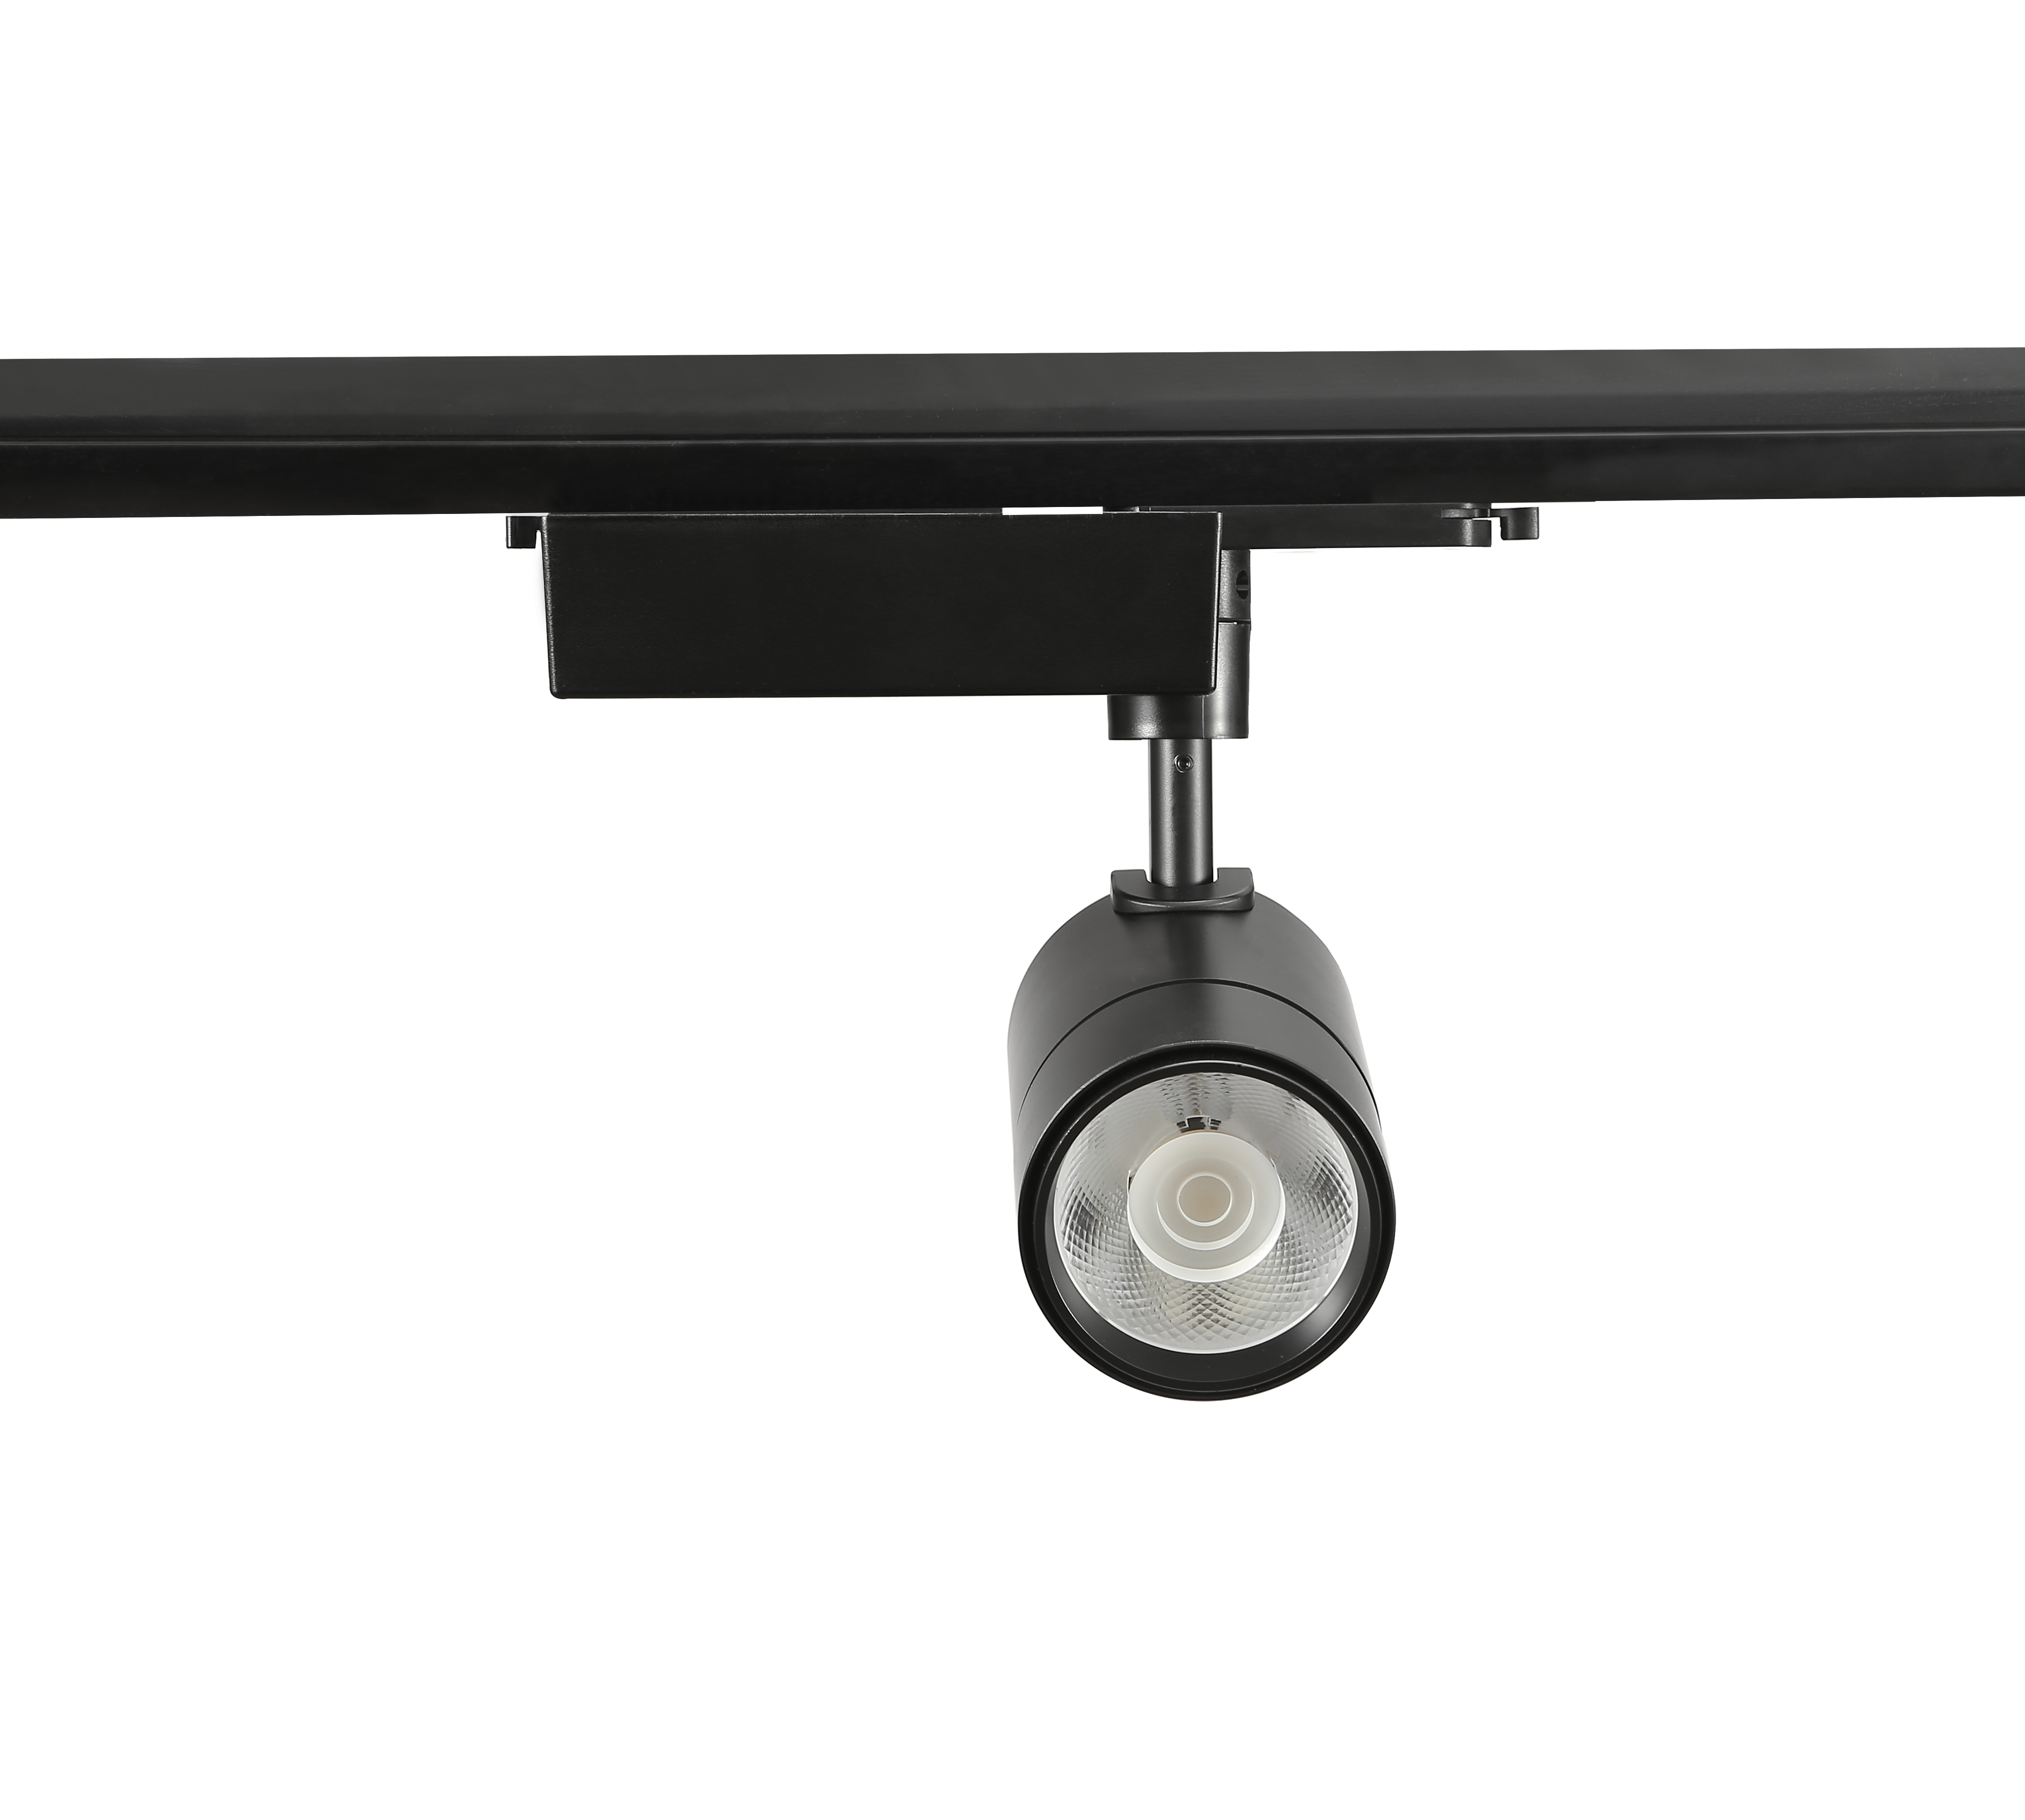 18W led track lighting front